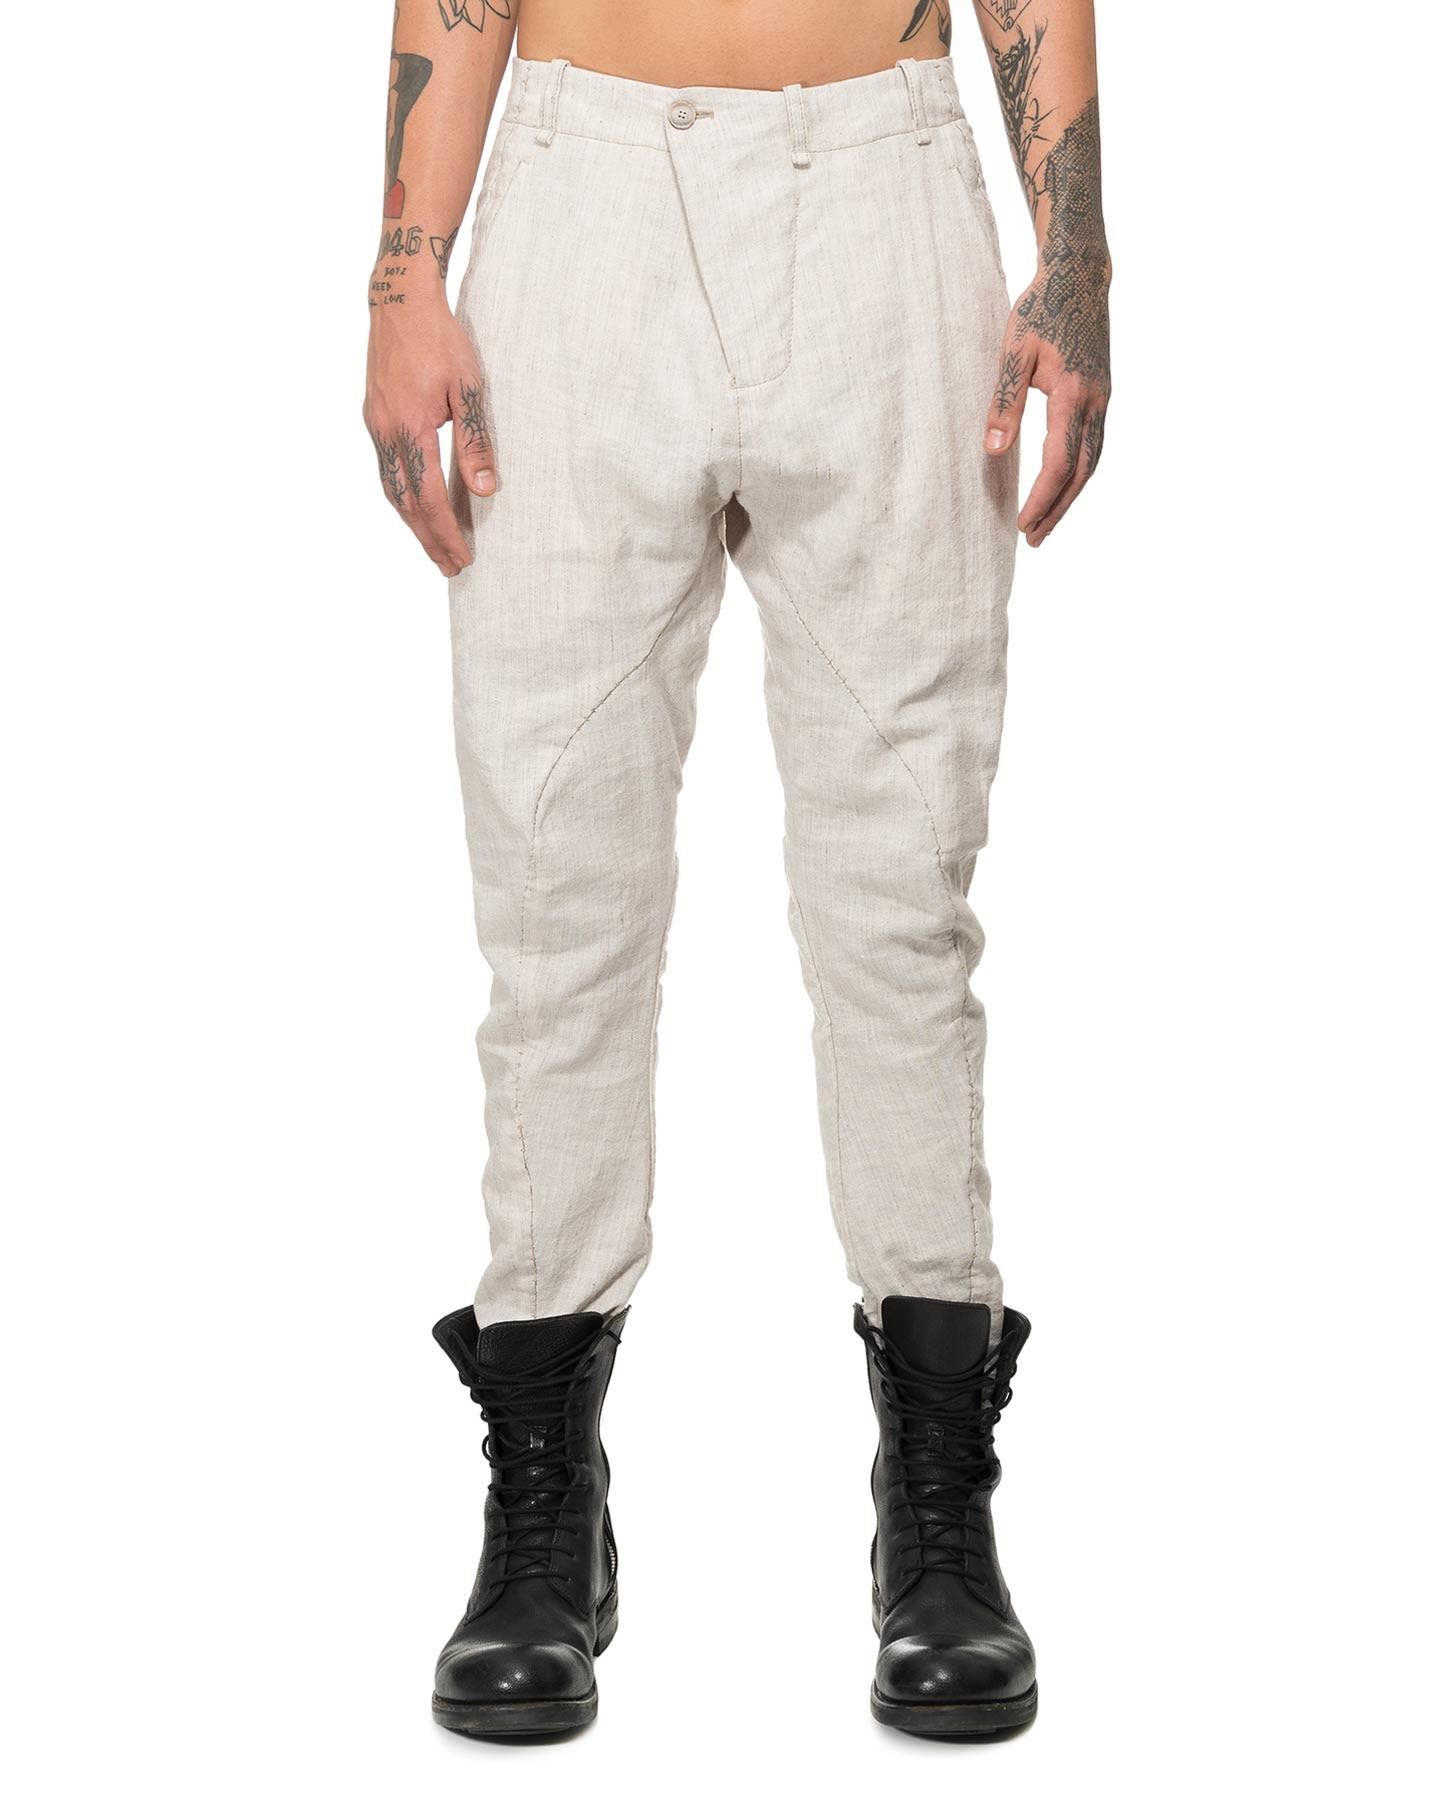 RIPPED POCKET CURVE KNEE PANT